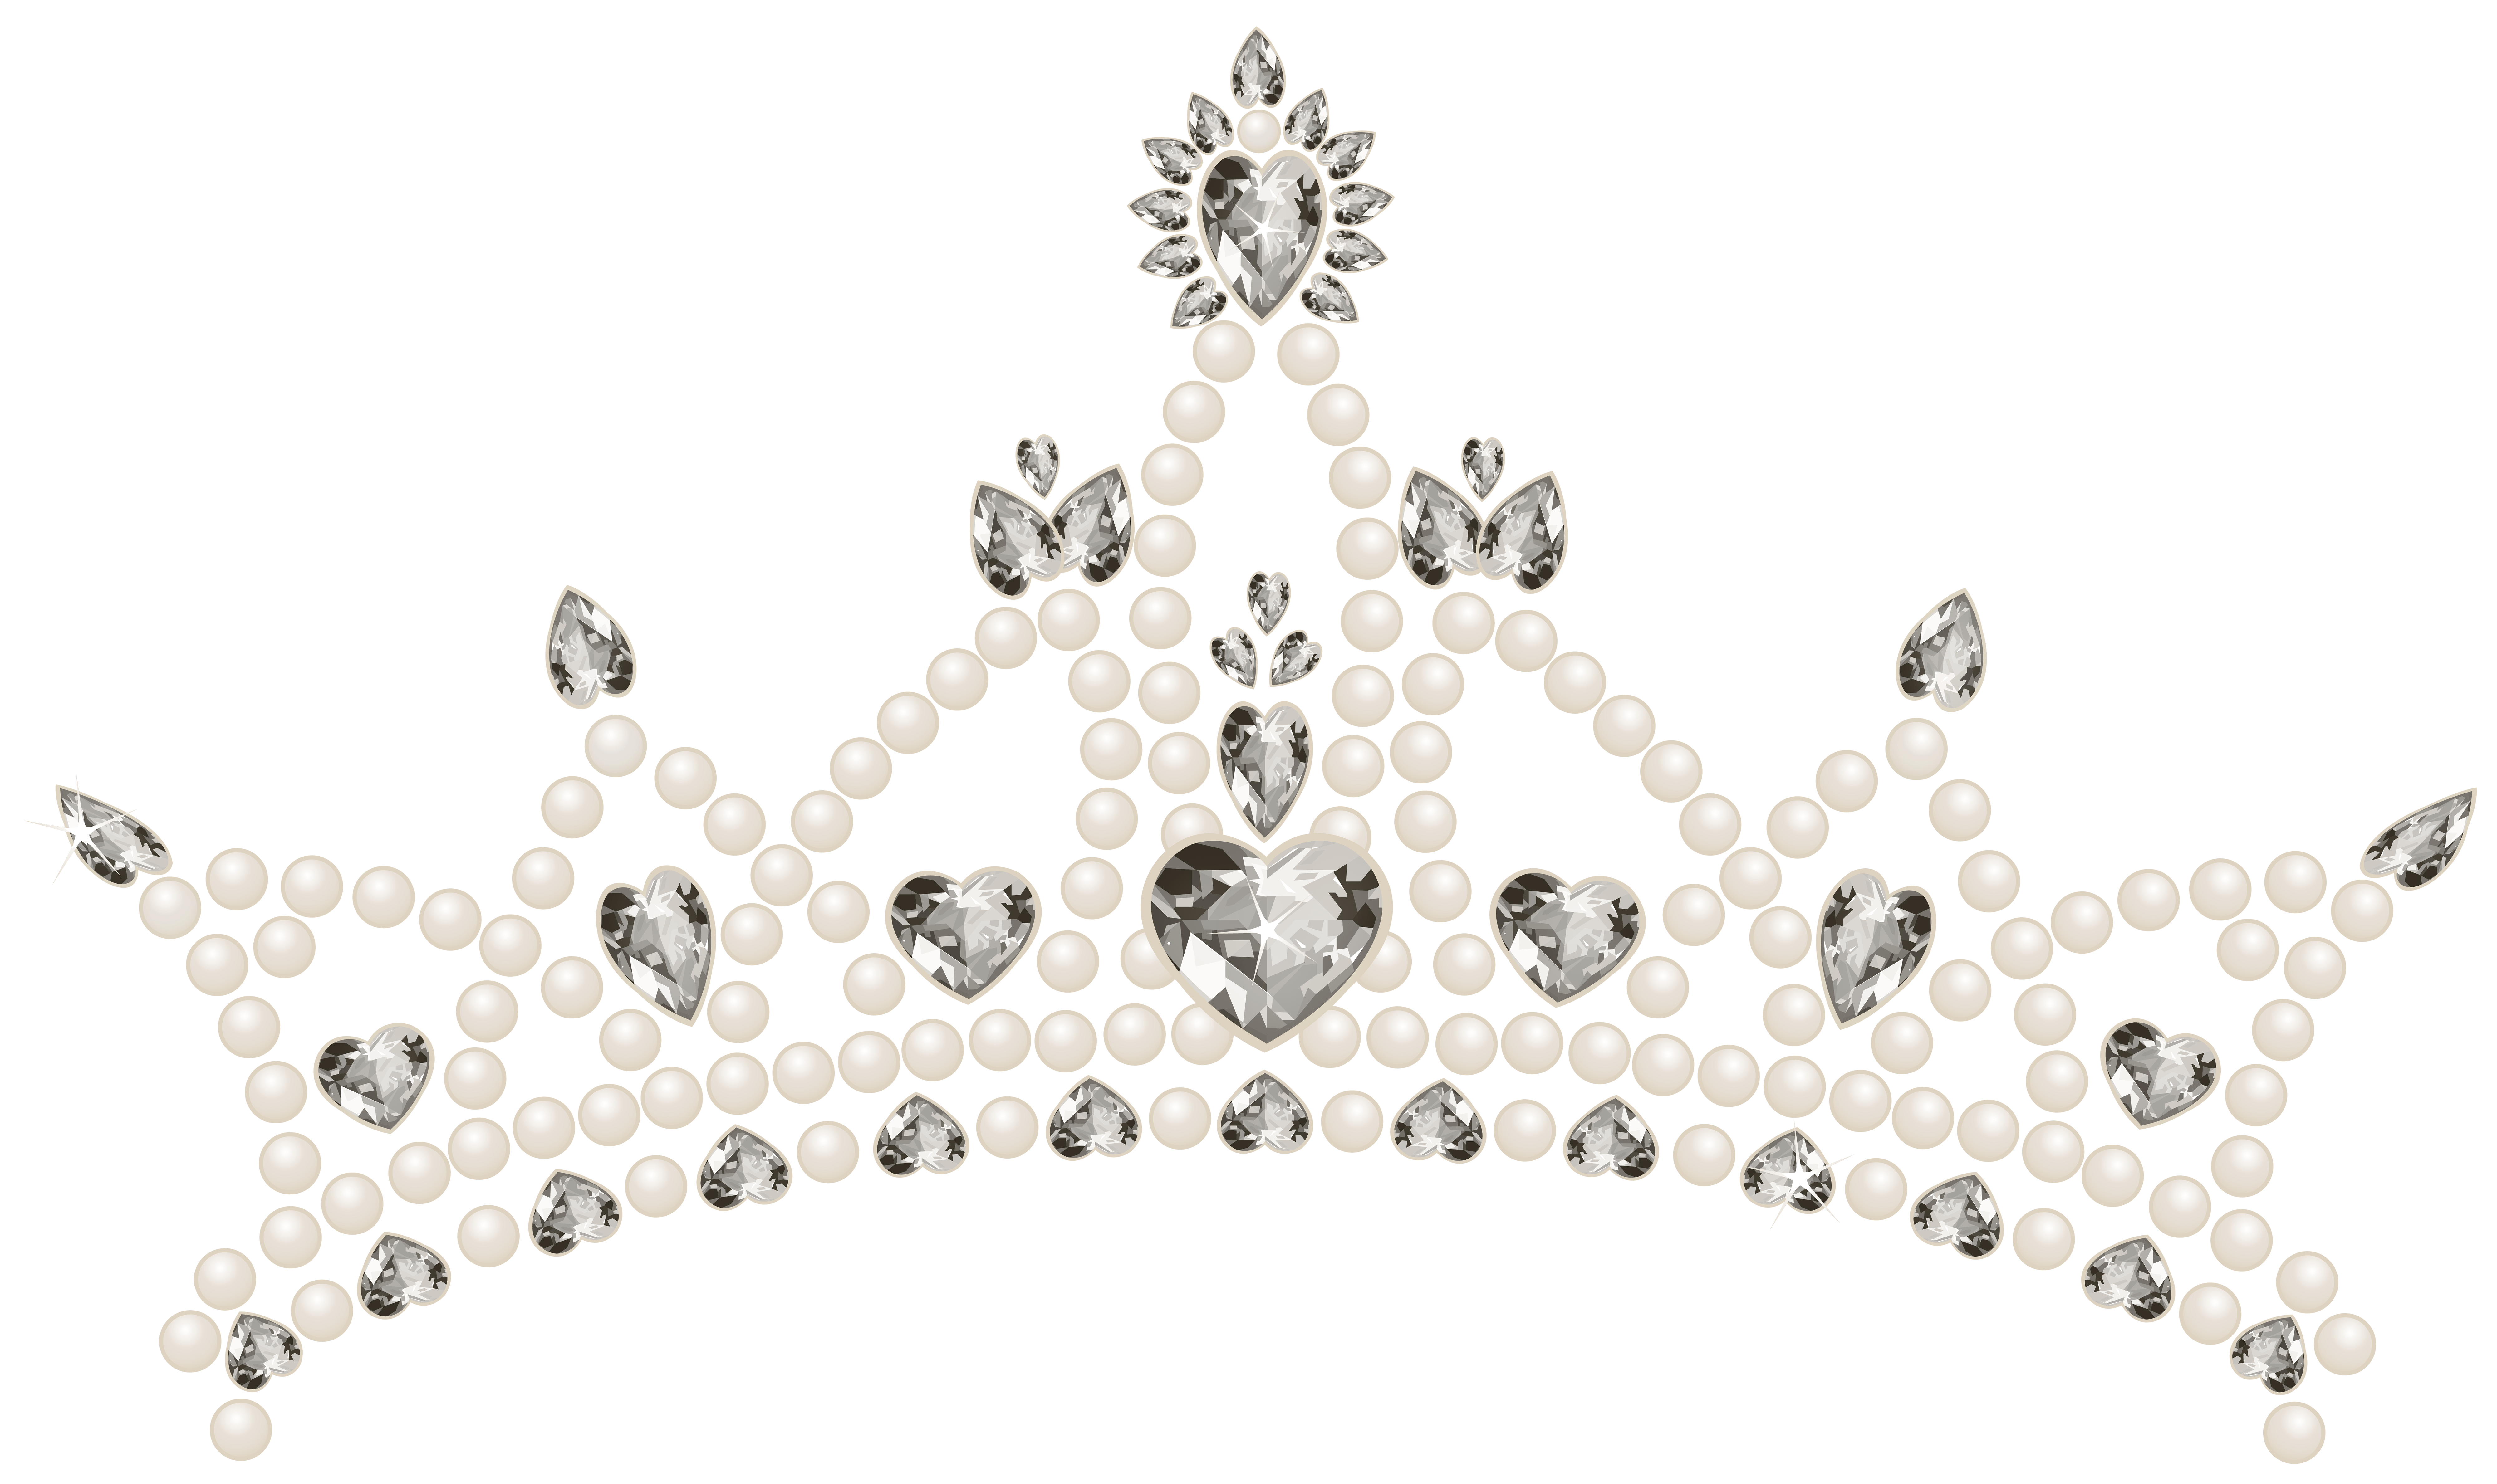 Tiara With Hearts Transparent Png Clip Art Image Gallery